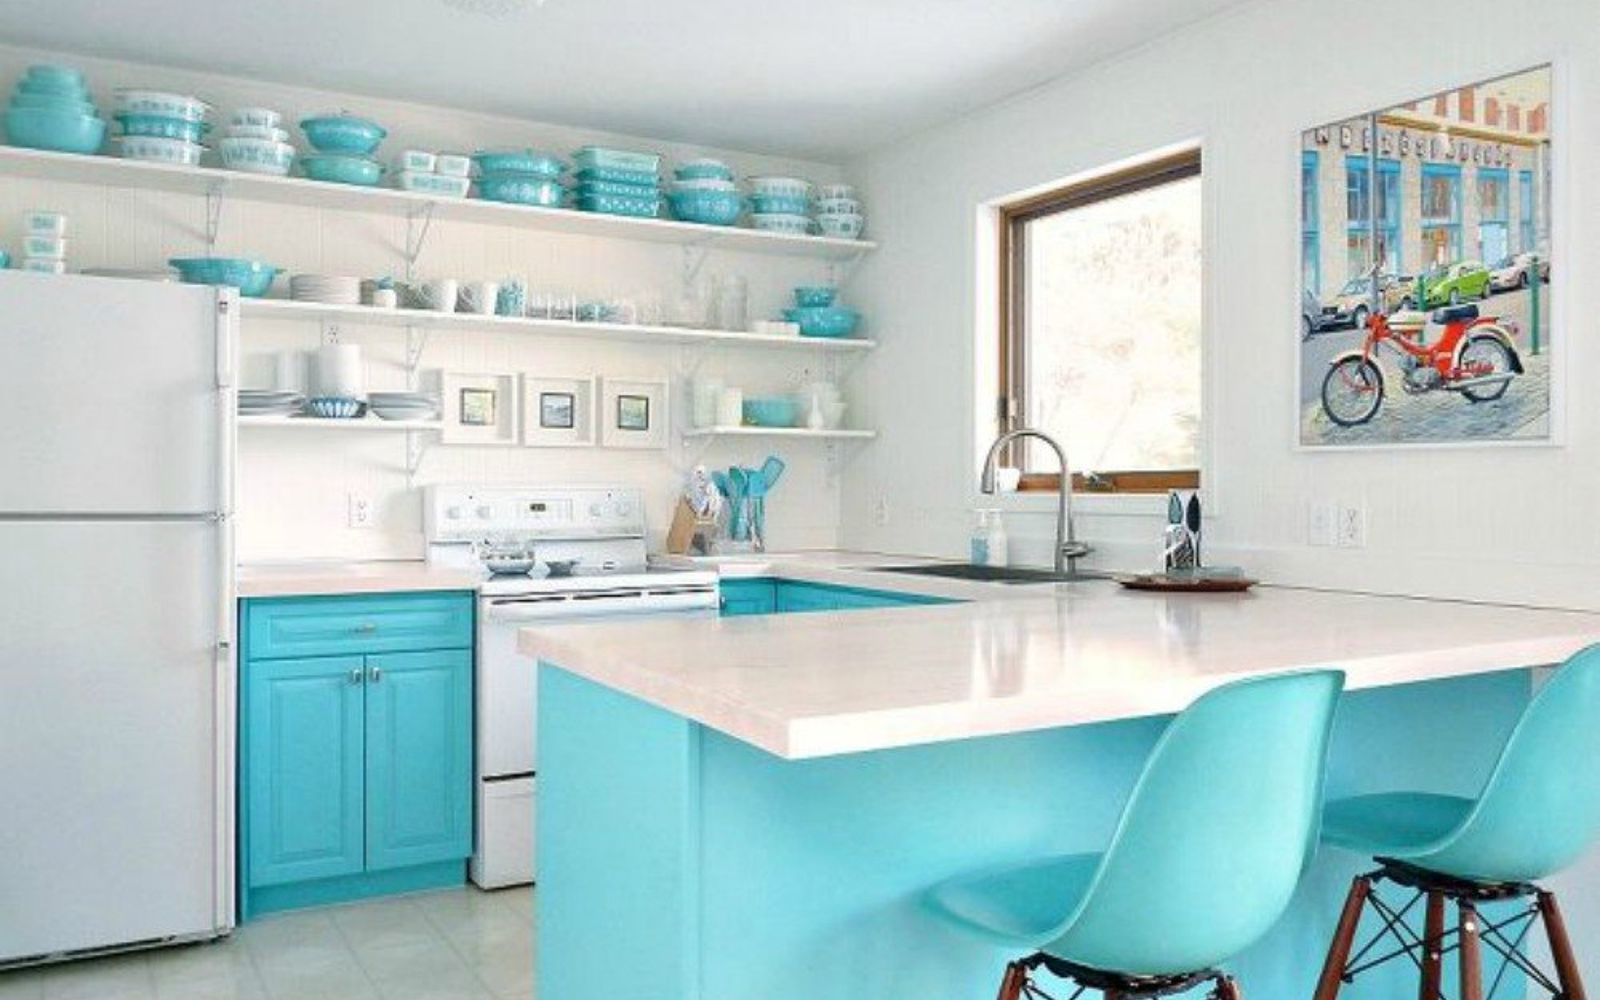 transform your kitchen cabinets without paint (11 ideas) | hometalk